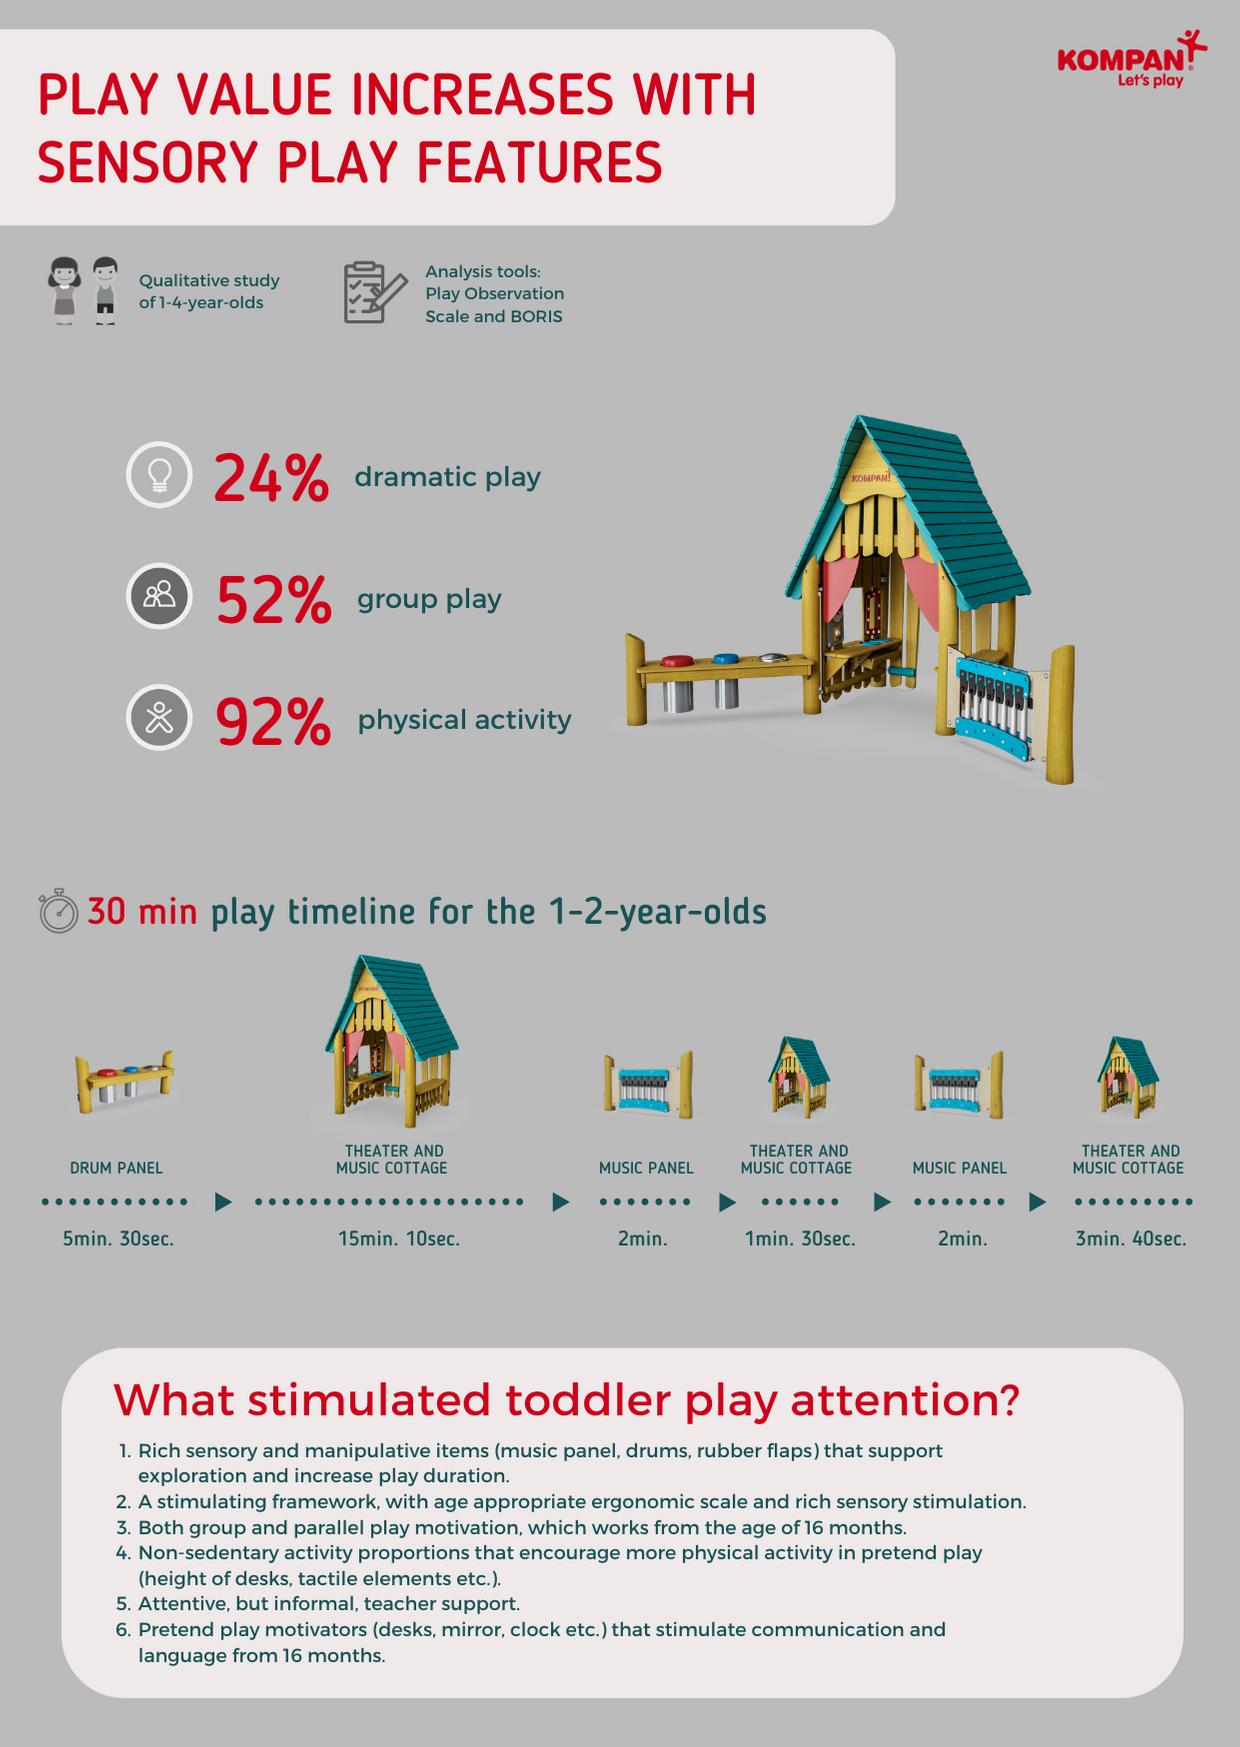 Play Value Increases with sensory play festures_Infographic.png